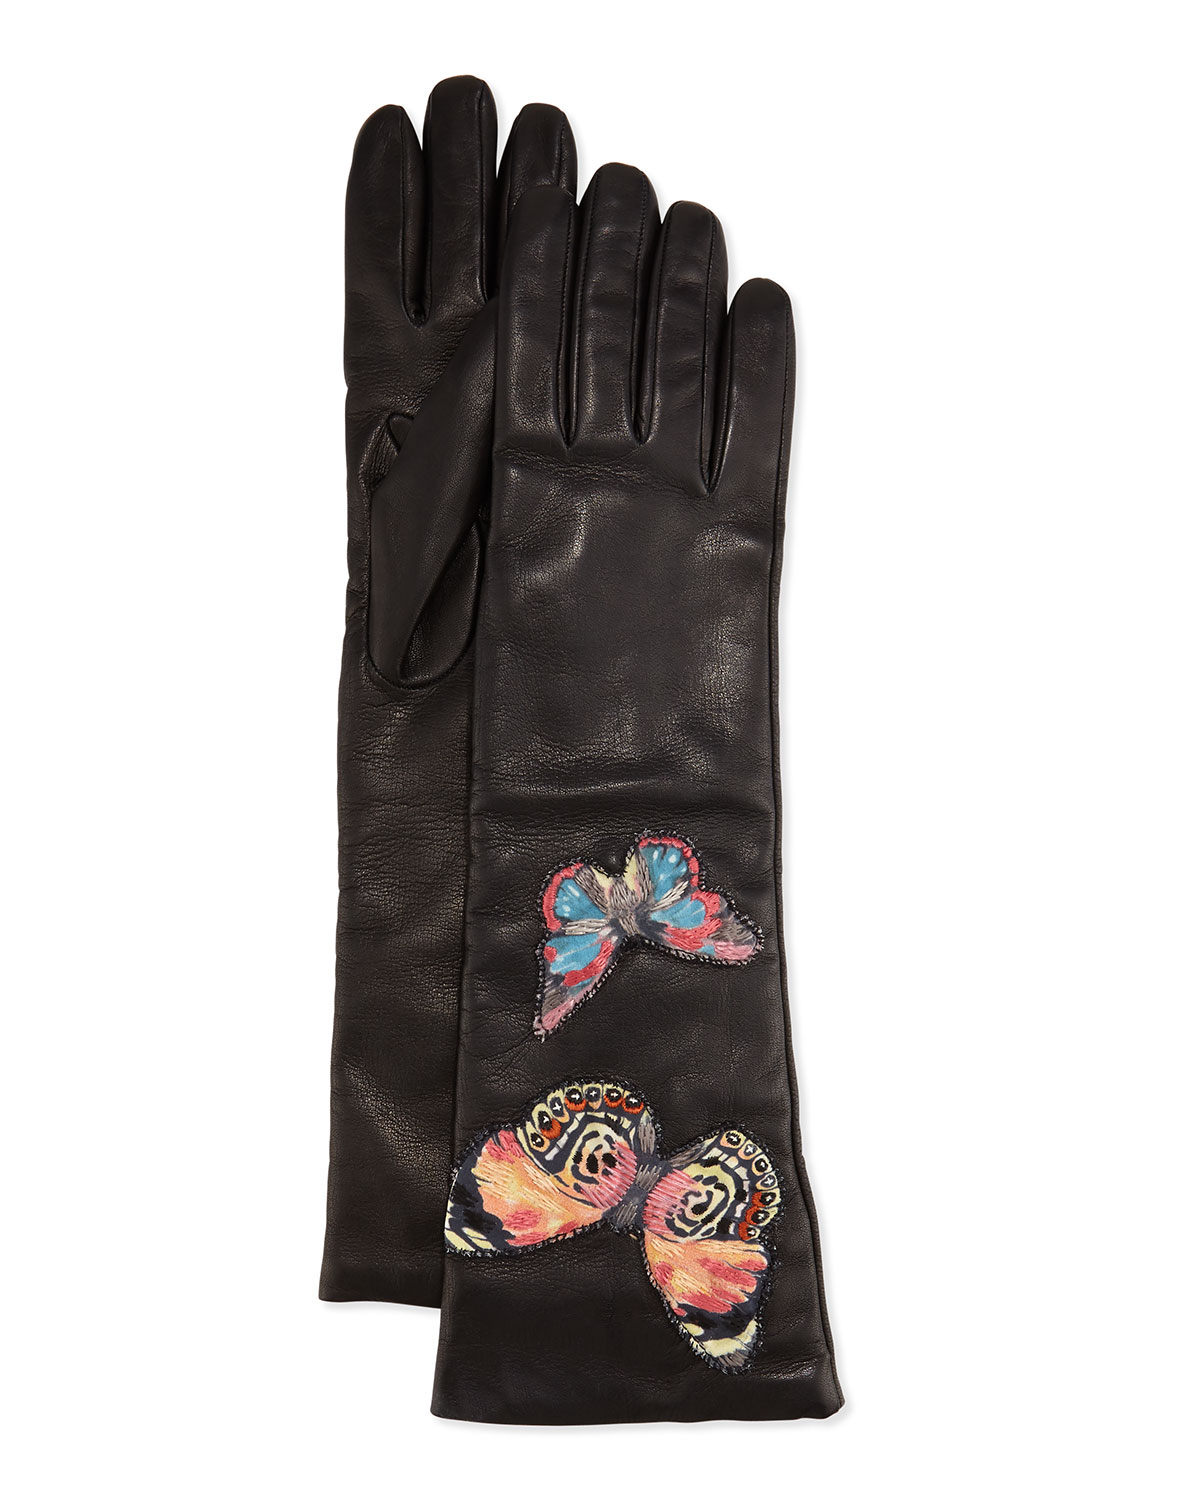 Napa Leather Butterfly Embroidered Gloves, Black, Size: 6.5 - Valentino